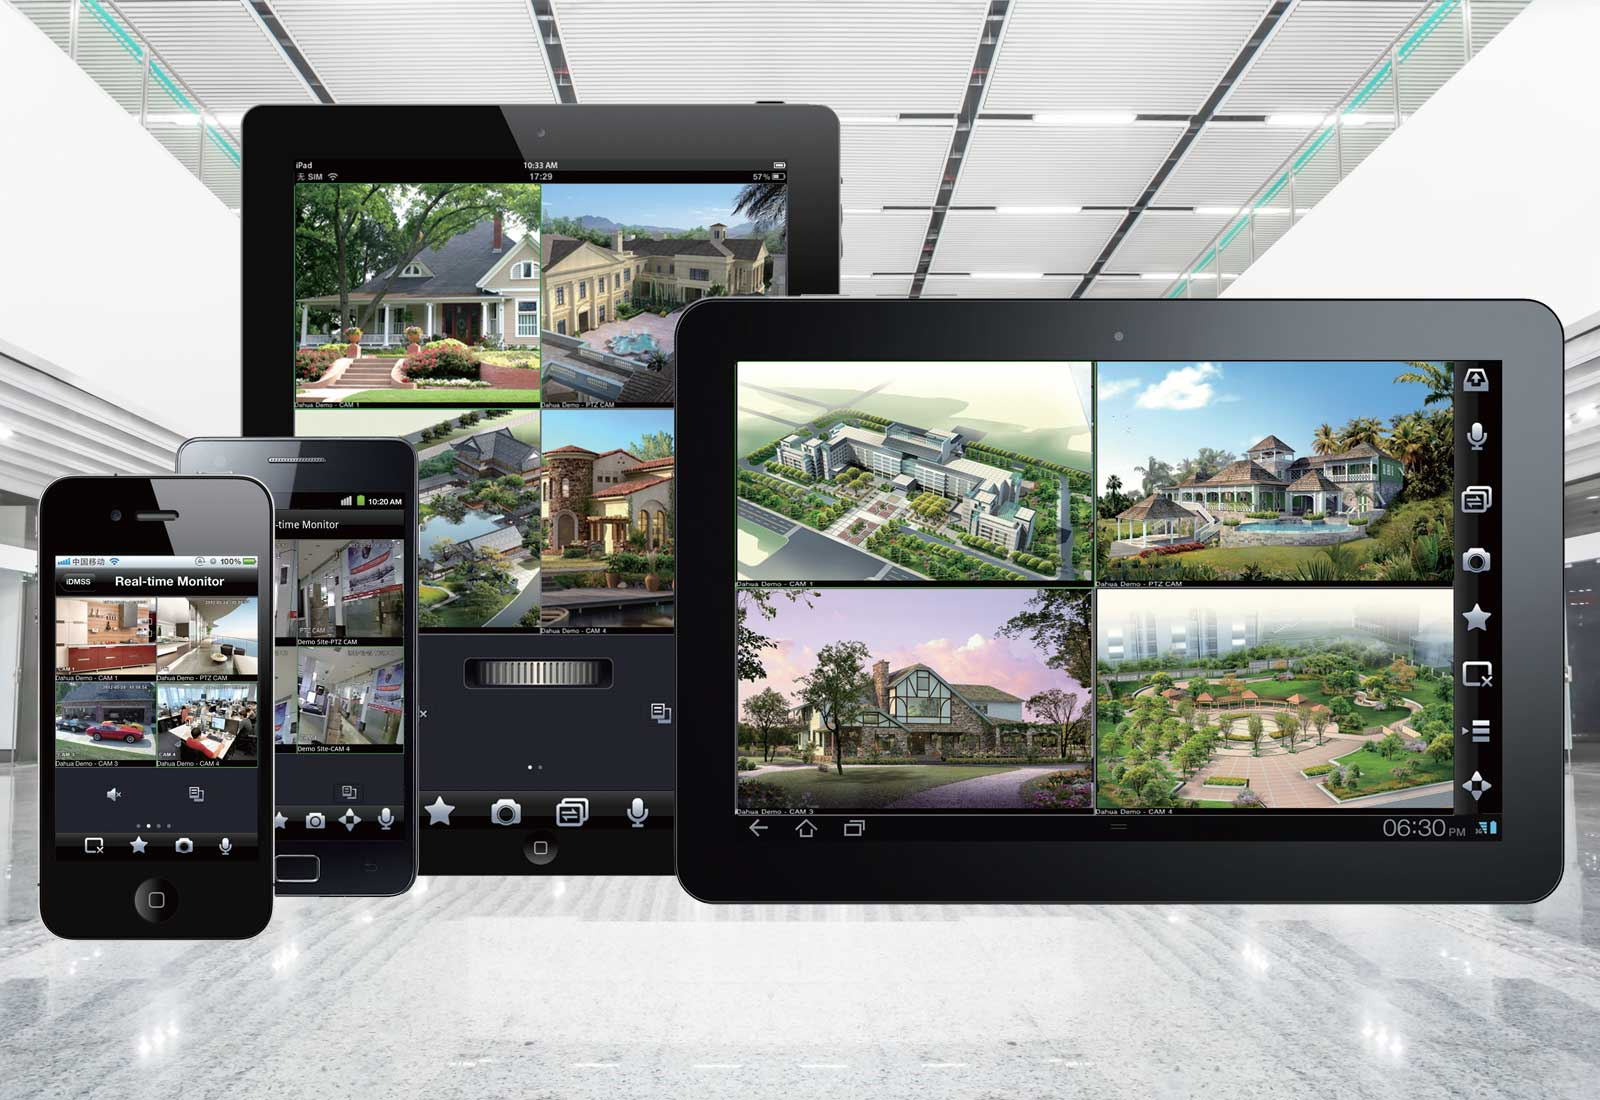 Remote CCTV monitoring solutions